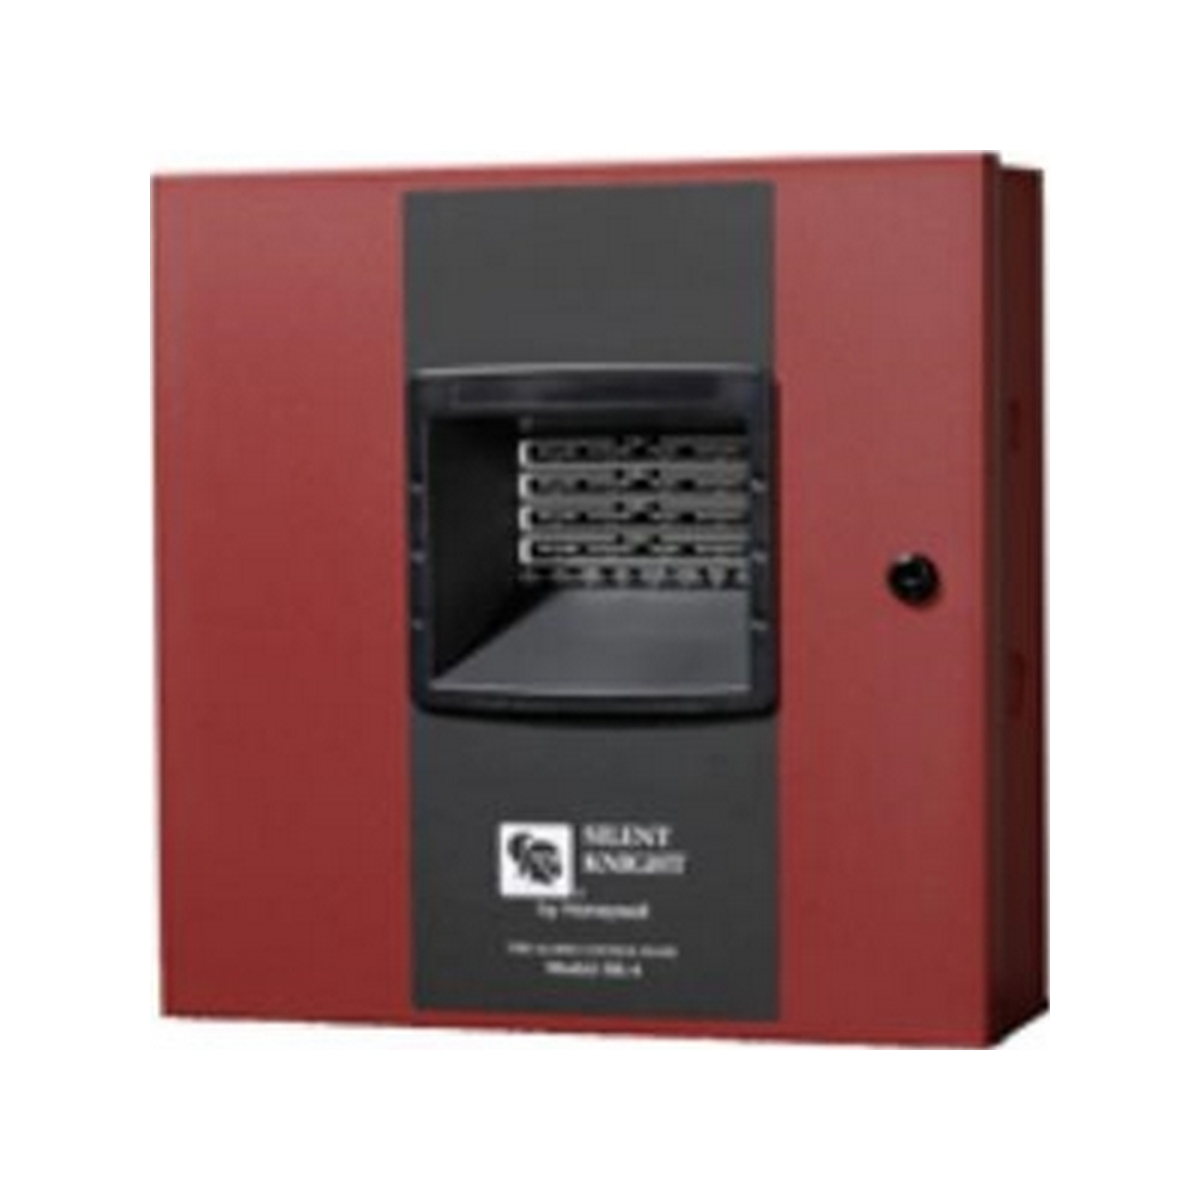 2 Zone conventional fire panel